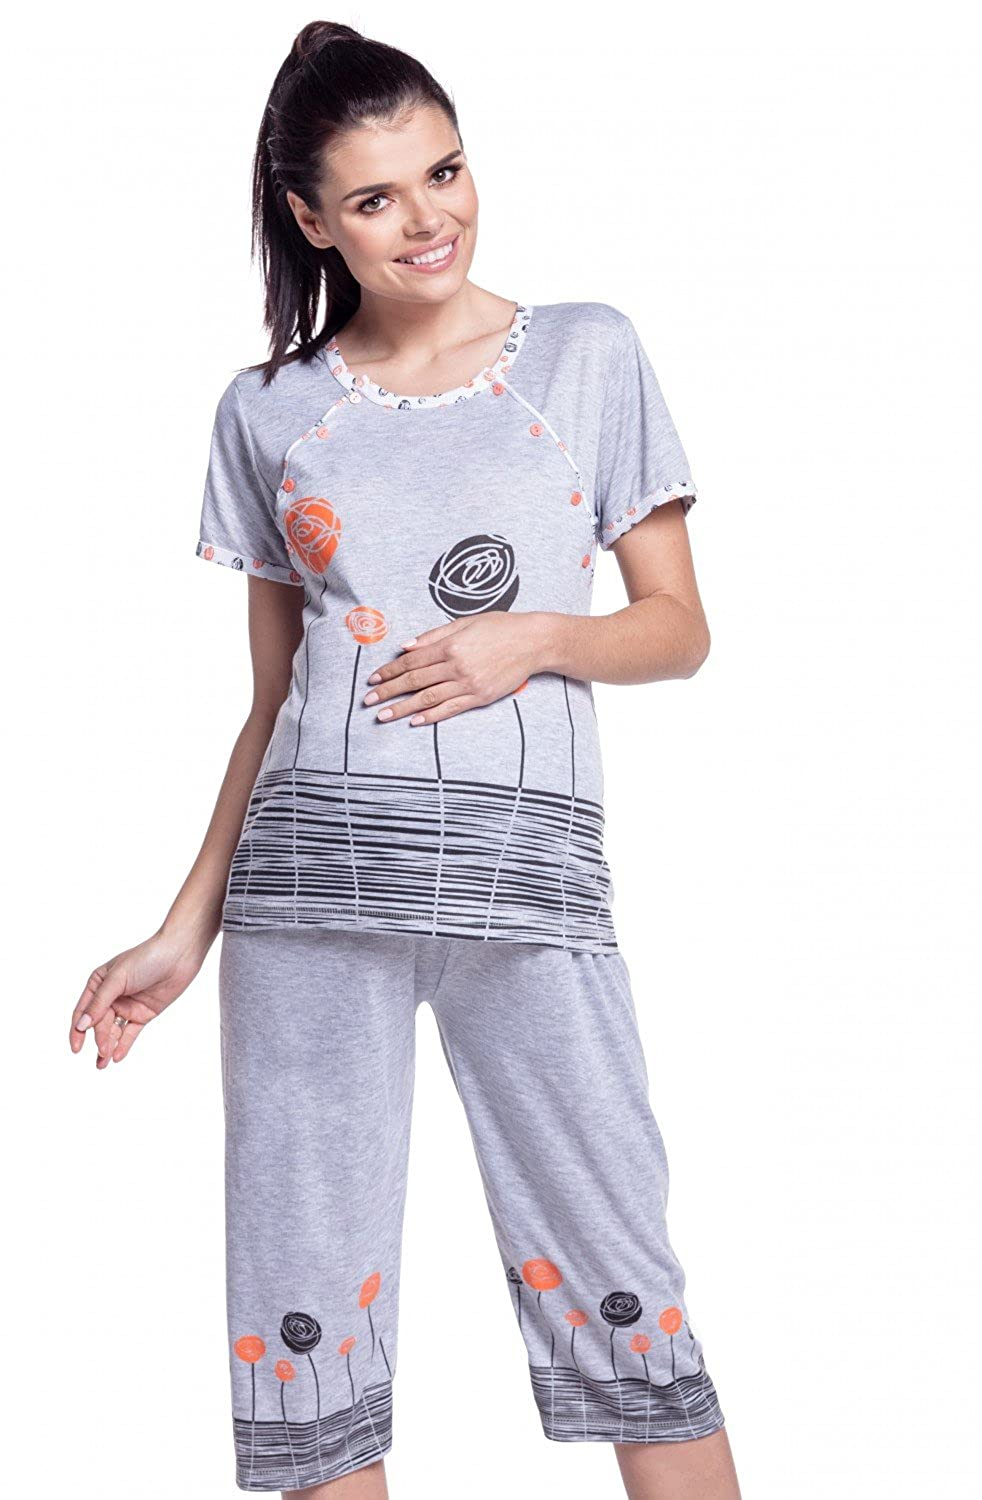 Zeta Ville - Womens Maternity Nursing Pyjamas Flowers Print Pregnancy - 174c US 4 M) nursing_night_174_5